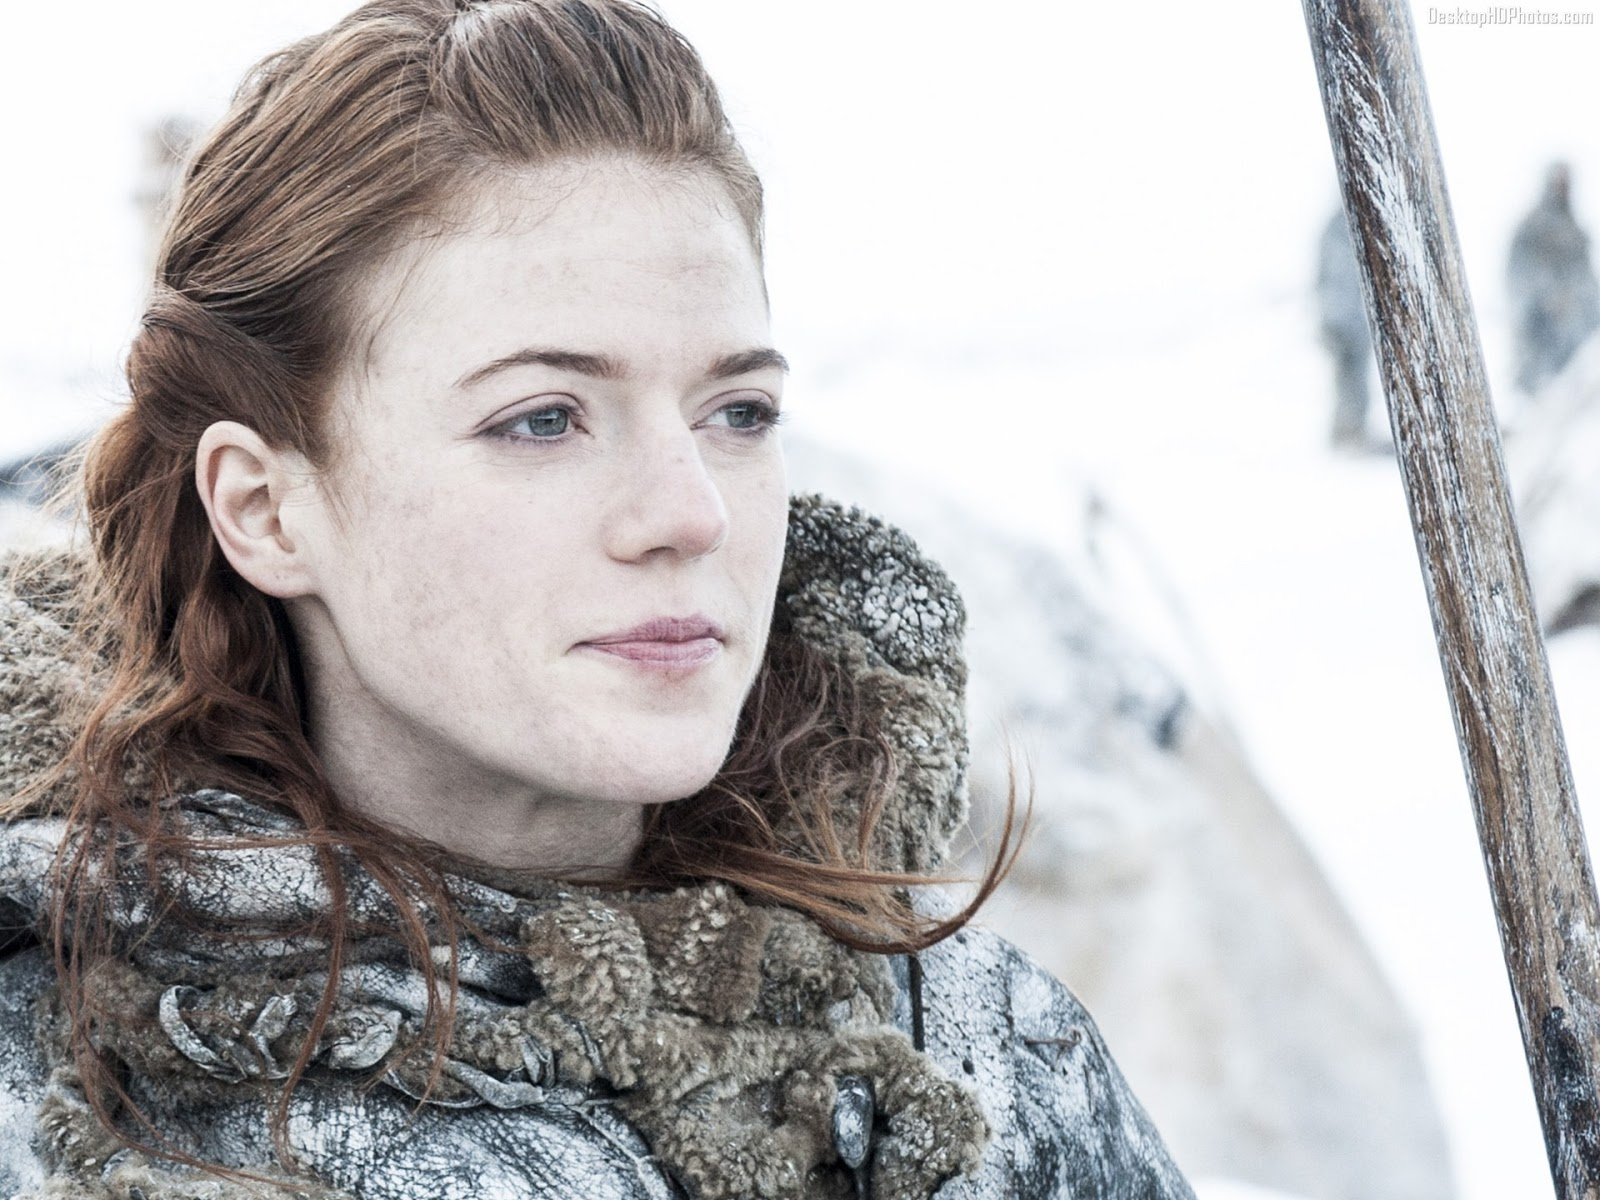 Rose Leslie The Game Of Thrones Actress Hd Wallpaper  Hd -1594